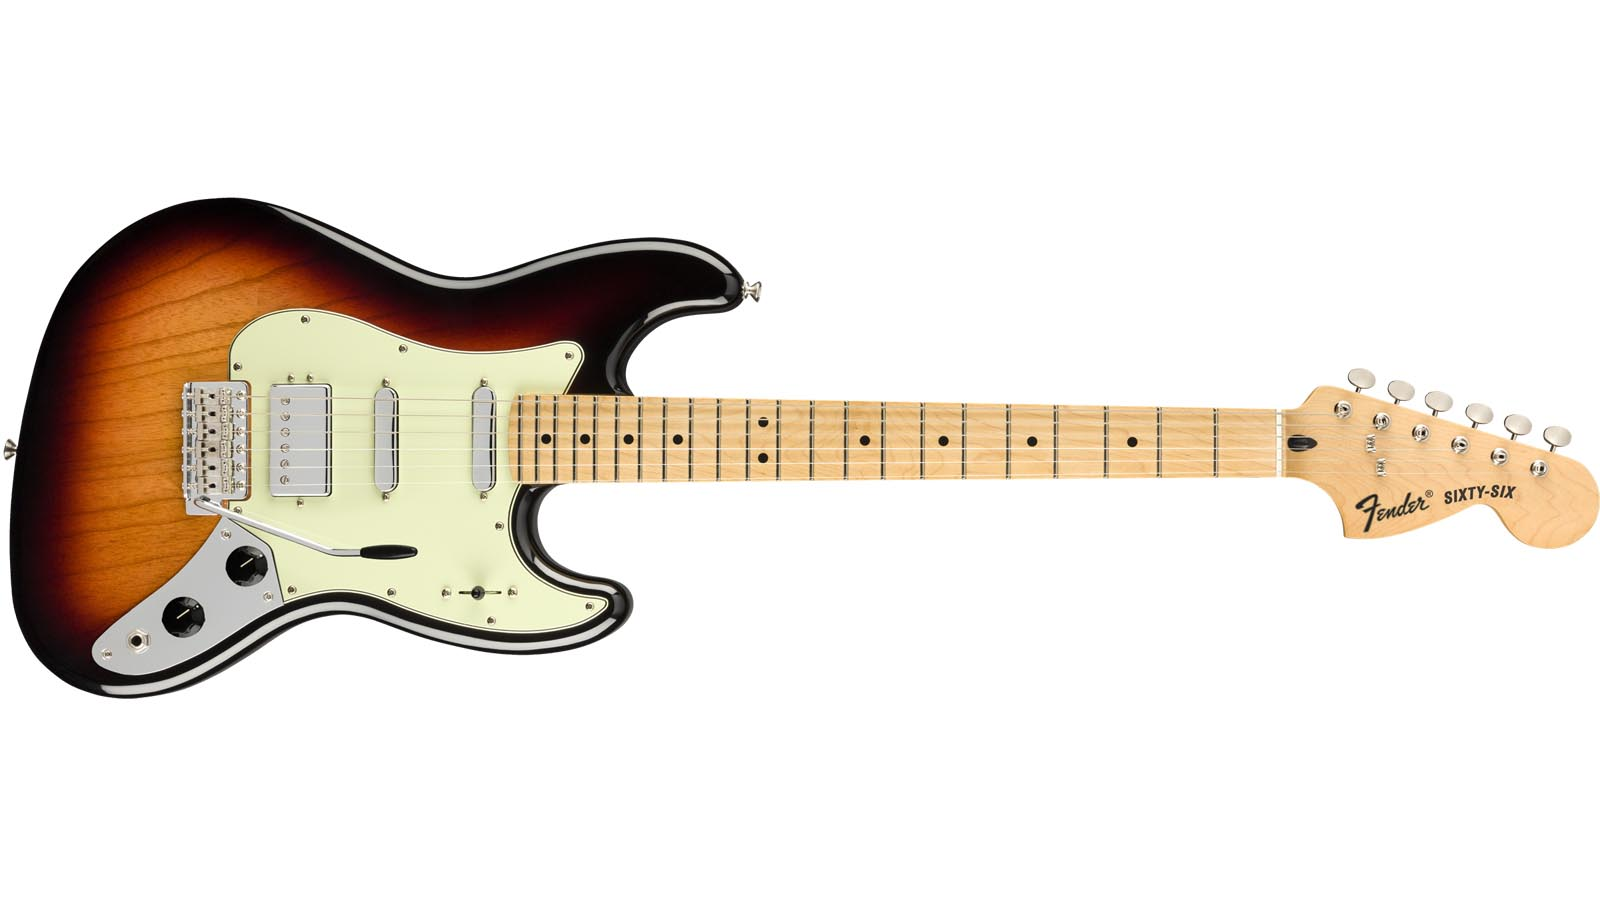 Fender Sixty-Six MN 3TS Alternate Reality Serie